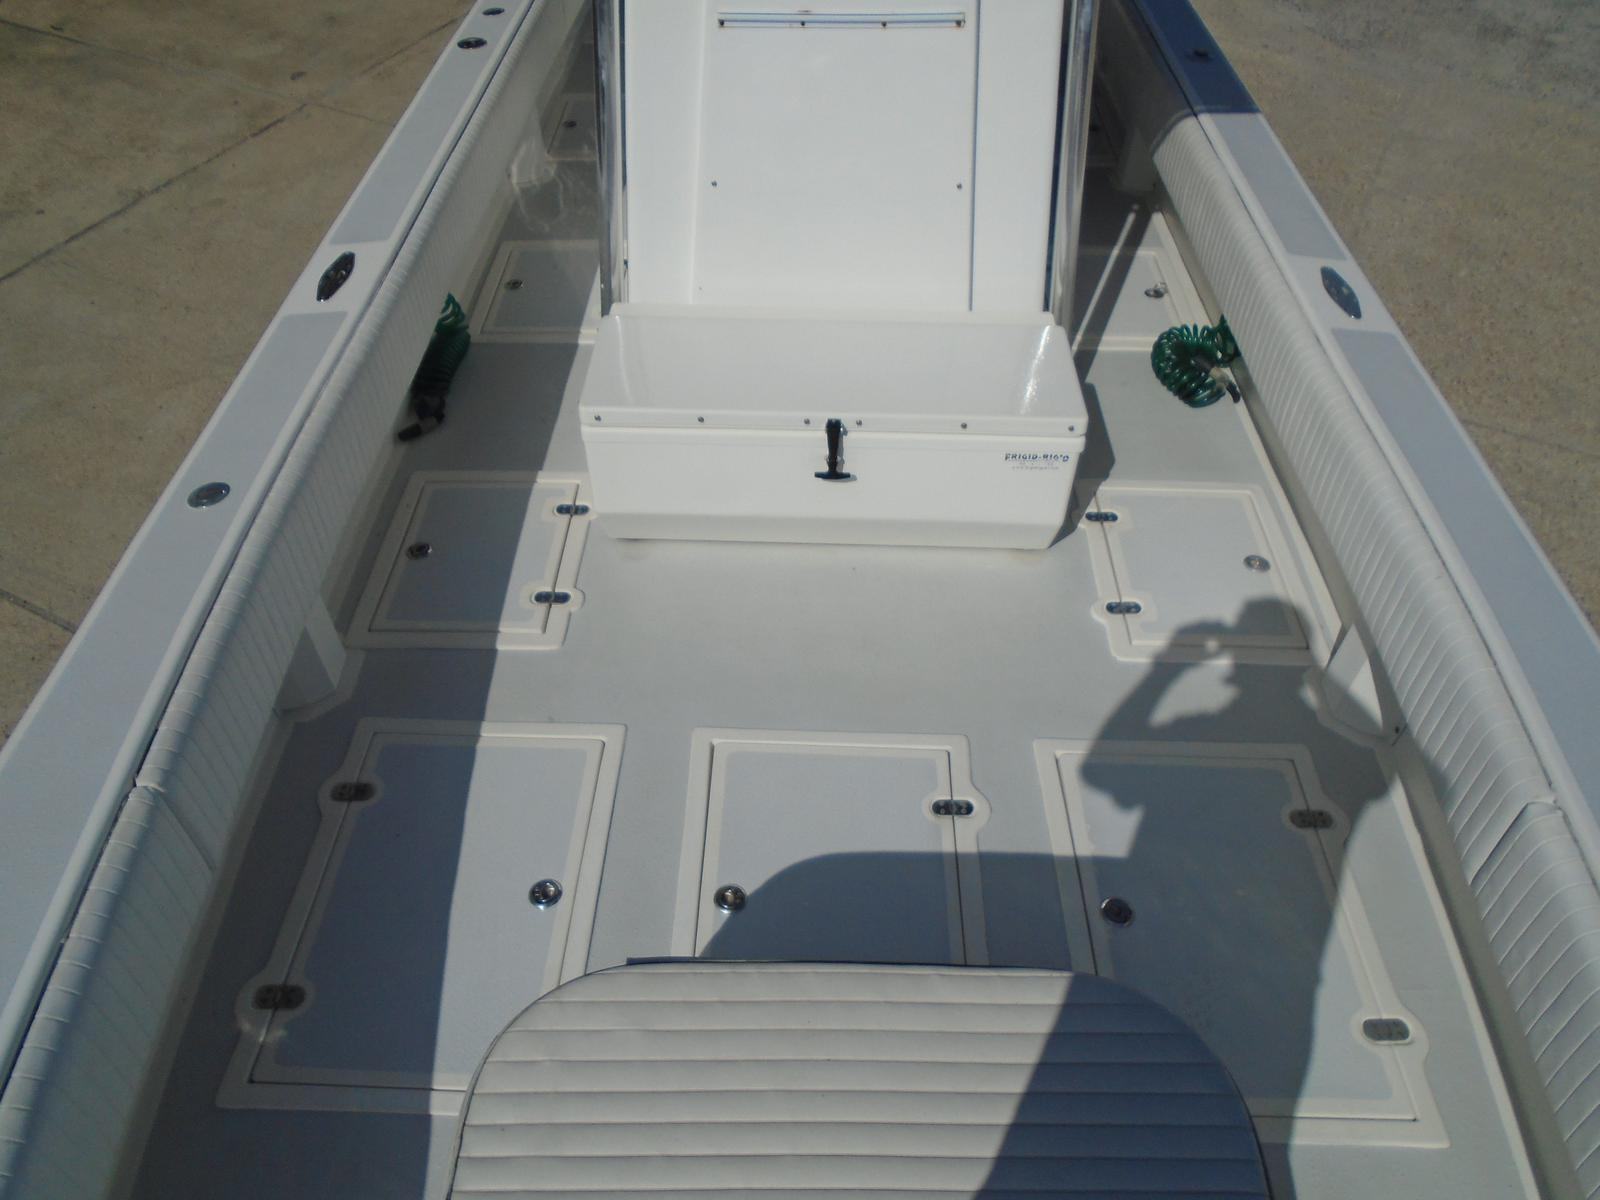 2007 Sabalo boat for sale, model of the boat is 41 CC & Image # 26 of 50